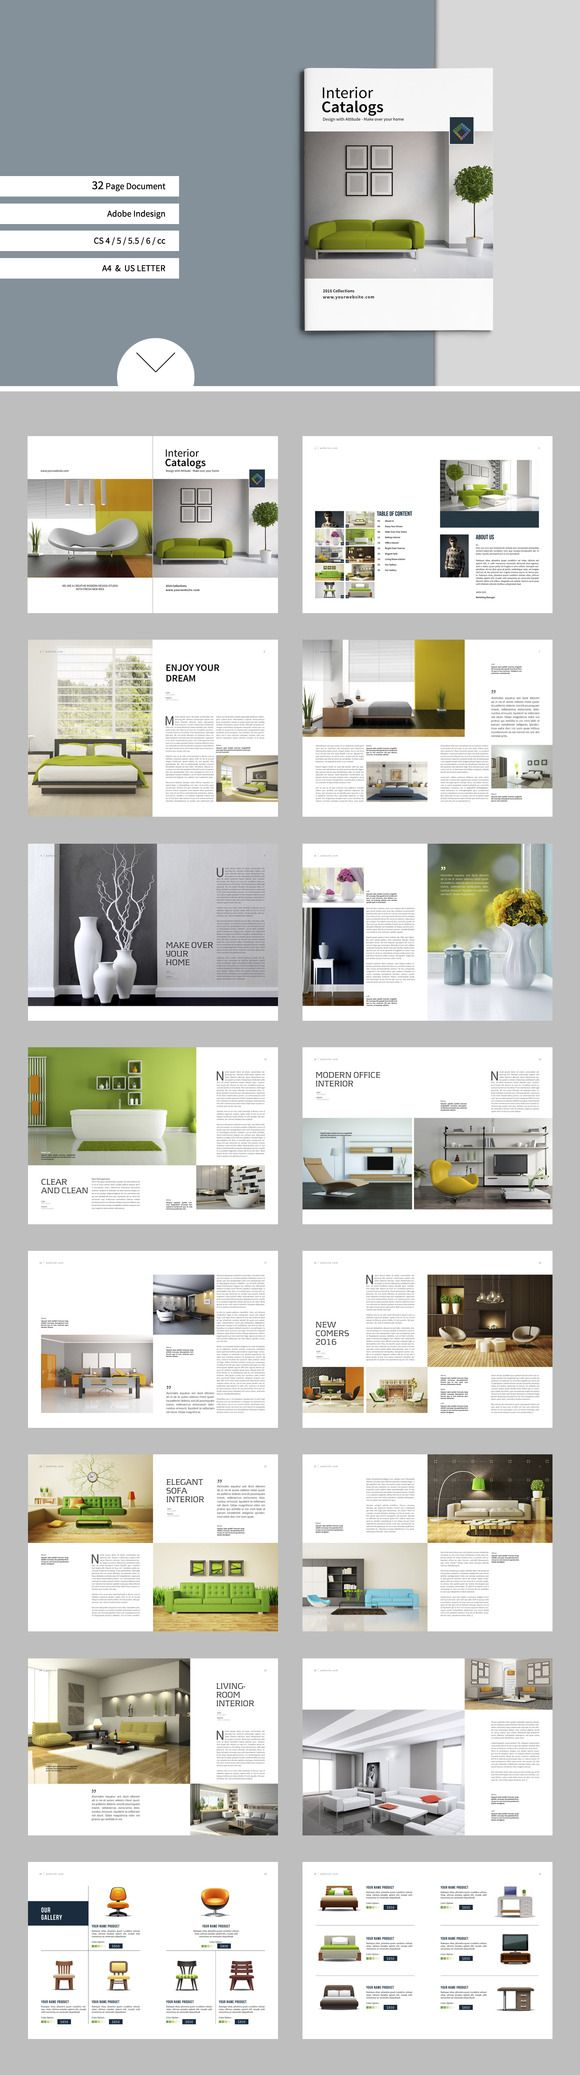 Brochure Catalogs Portfolio By Tujuhbenua On Creativemarket